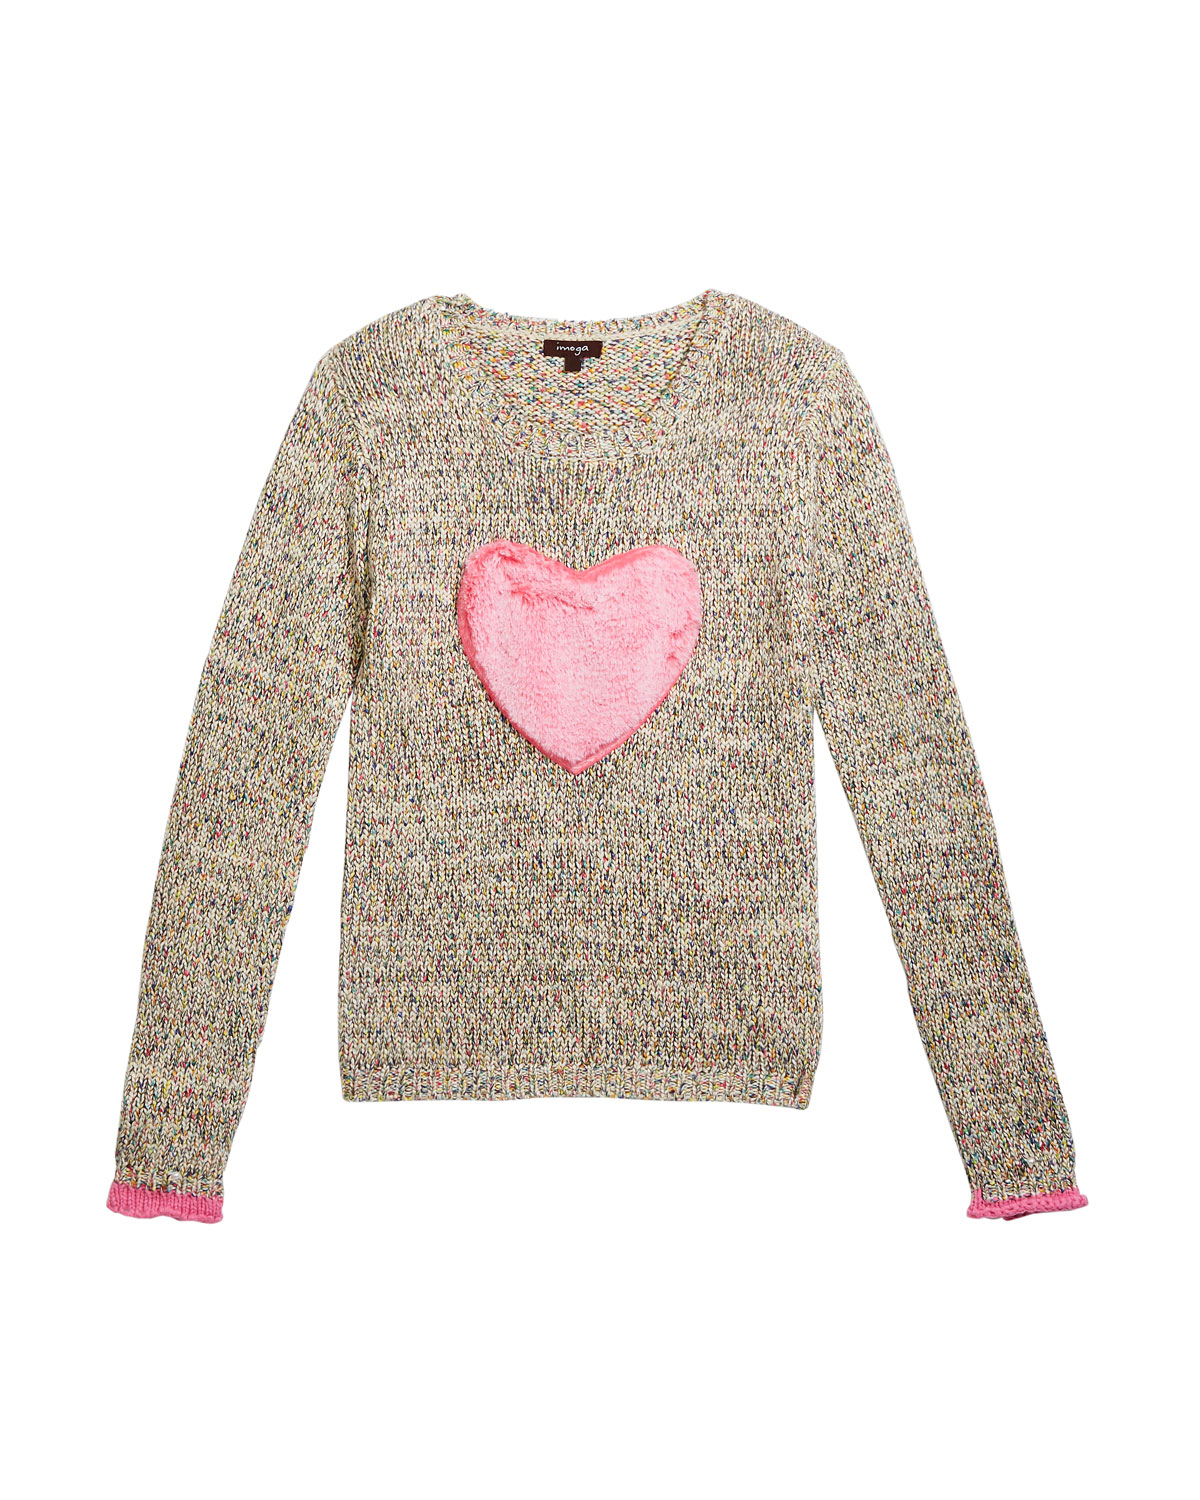 Imoga  GIRL'S MULTICOLORED KNIT SWEATER W/ FAUX FUR HEART PATCH